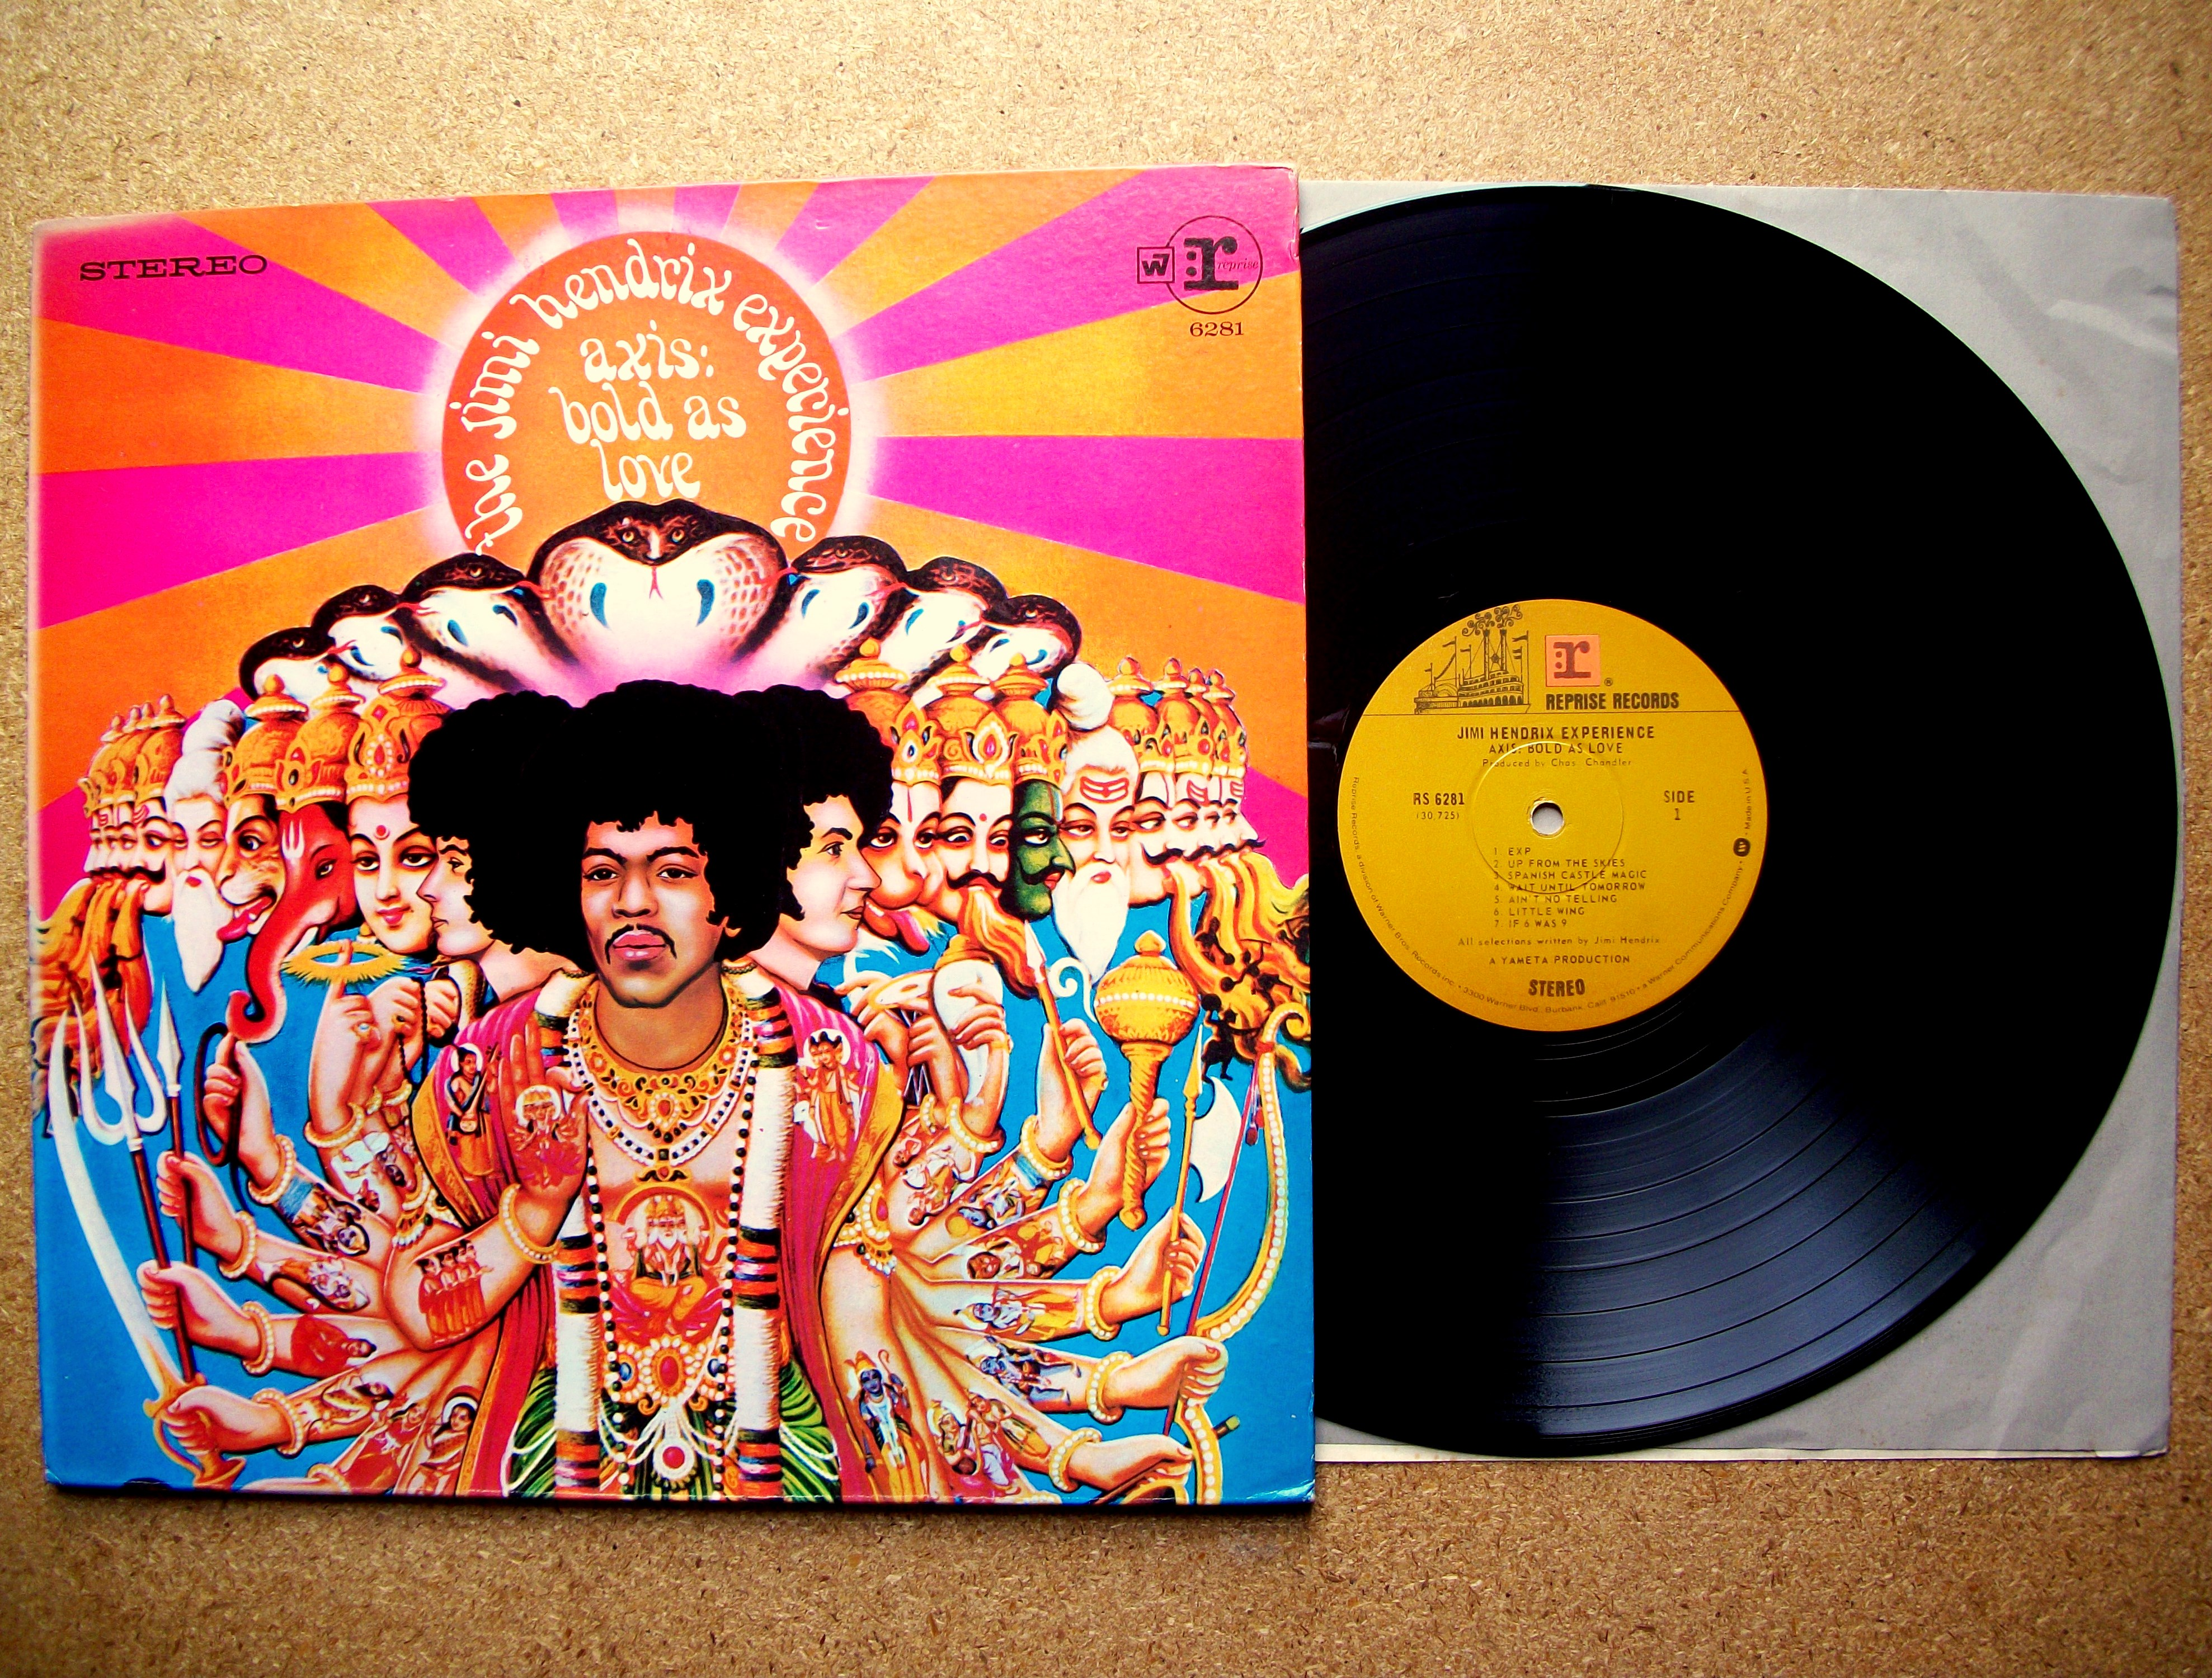 sinister vinyl collection the jimi hendrix experience axis bold as love 1967 sinister. Black Bedroom Furniture Sets. Home Design Ideas